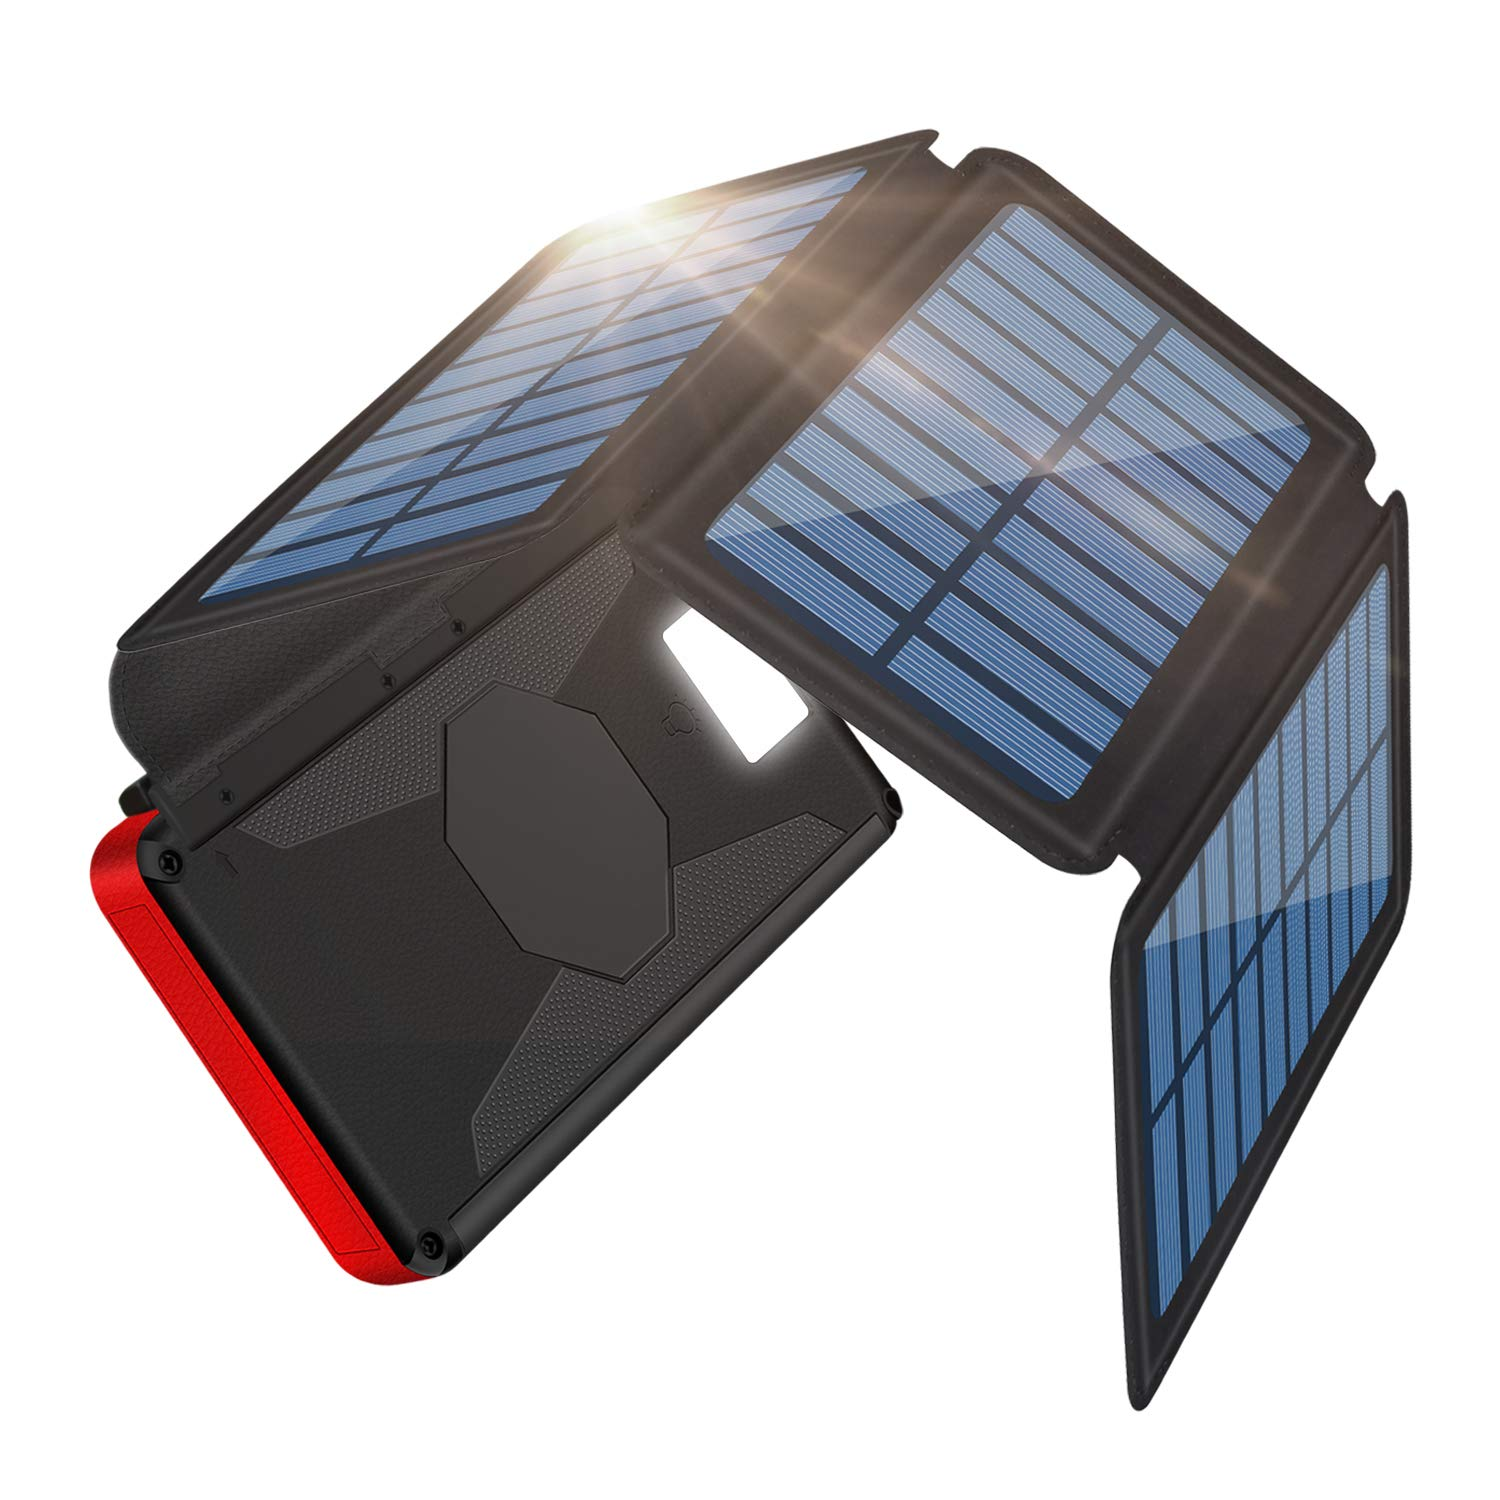 Portable Charger Solar Charger 26800mAh Solar Power Bank Detachable Solar Panel For Outdoor, 2 Inputs 2 USB Outputs, Water-Resistant Charger Pack with LED Flashlight Compatible Most Phones, Tablets by Be-charming